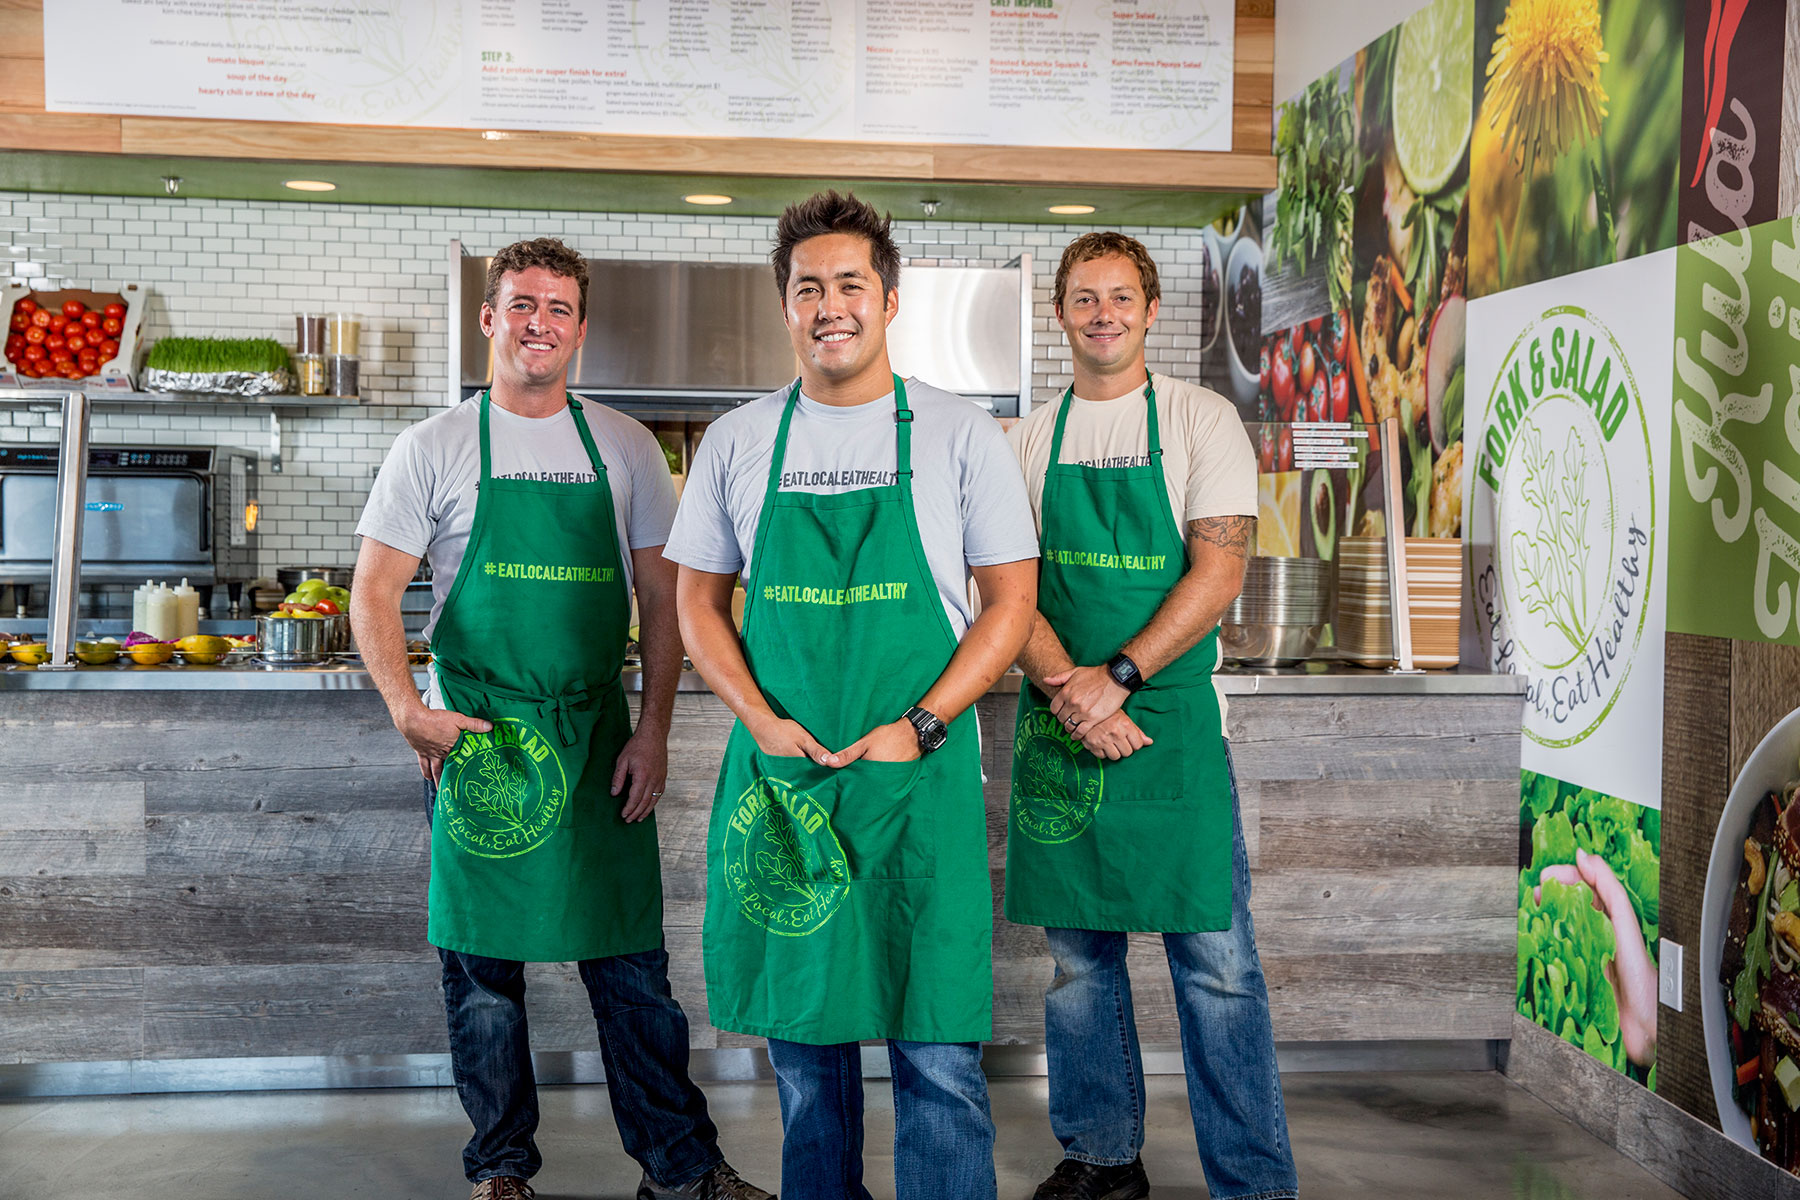 Owners Jaron Blosser, Travis Morrin and Cody Christopher. Photo credit: Fork & Salad